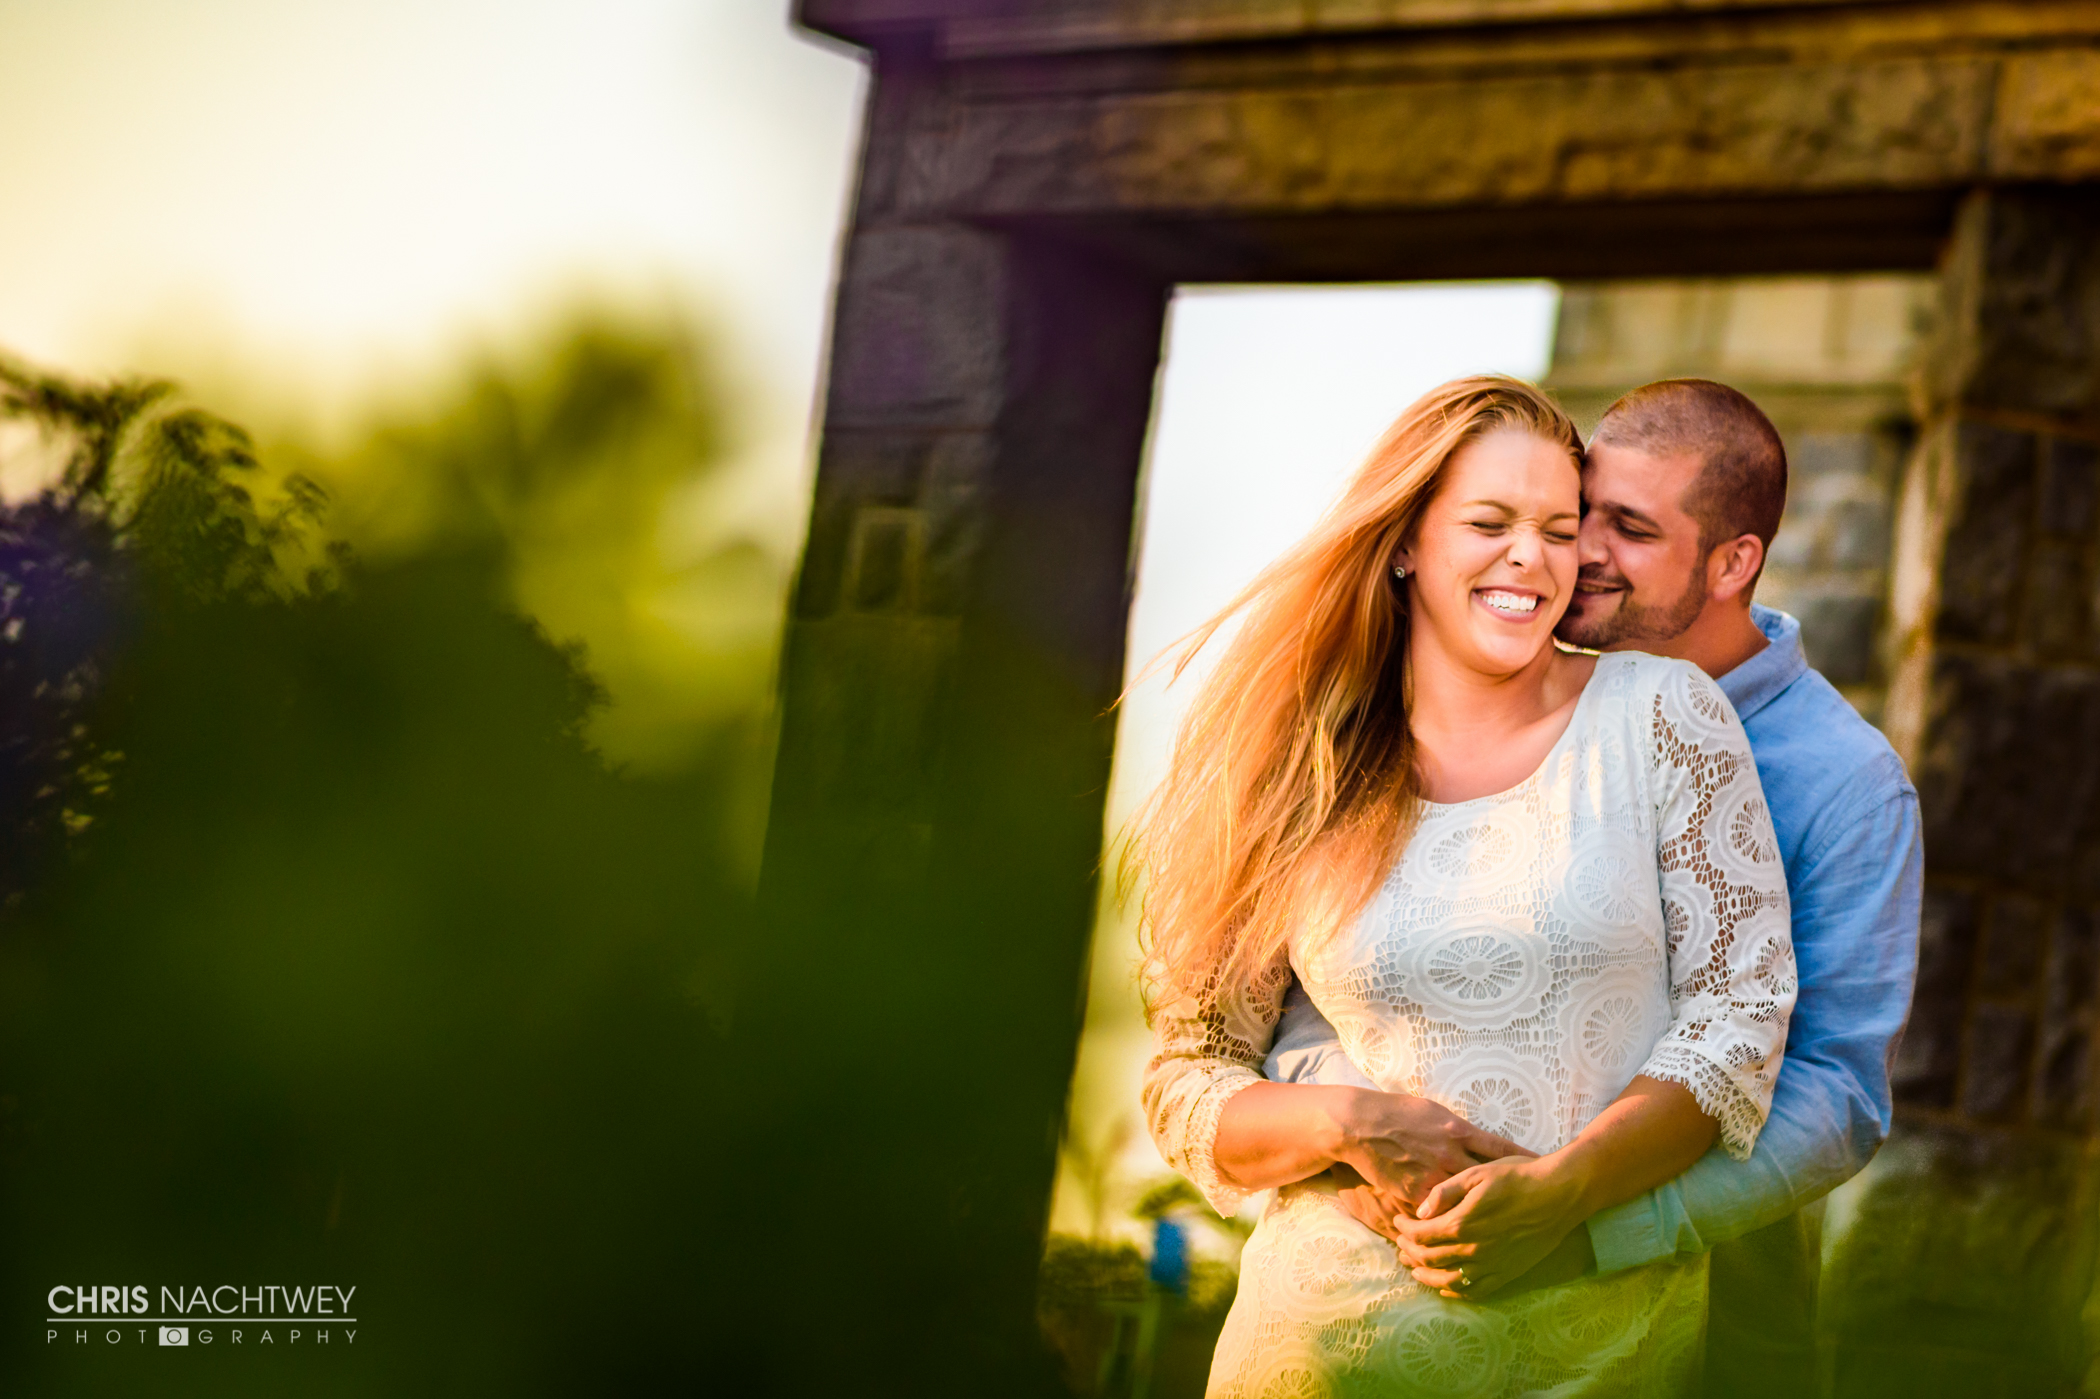 candid-connecticut-wedding-photographers-chris-nachtwey-photography.jpg